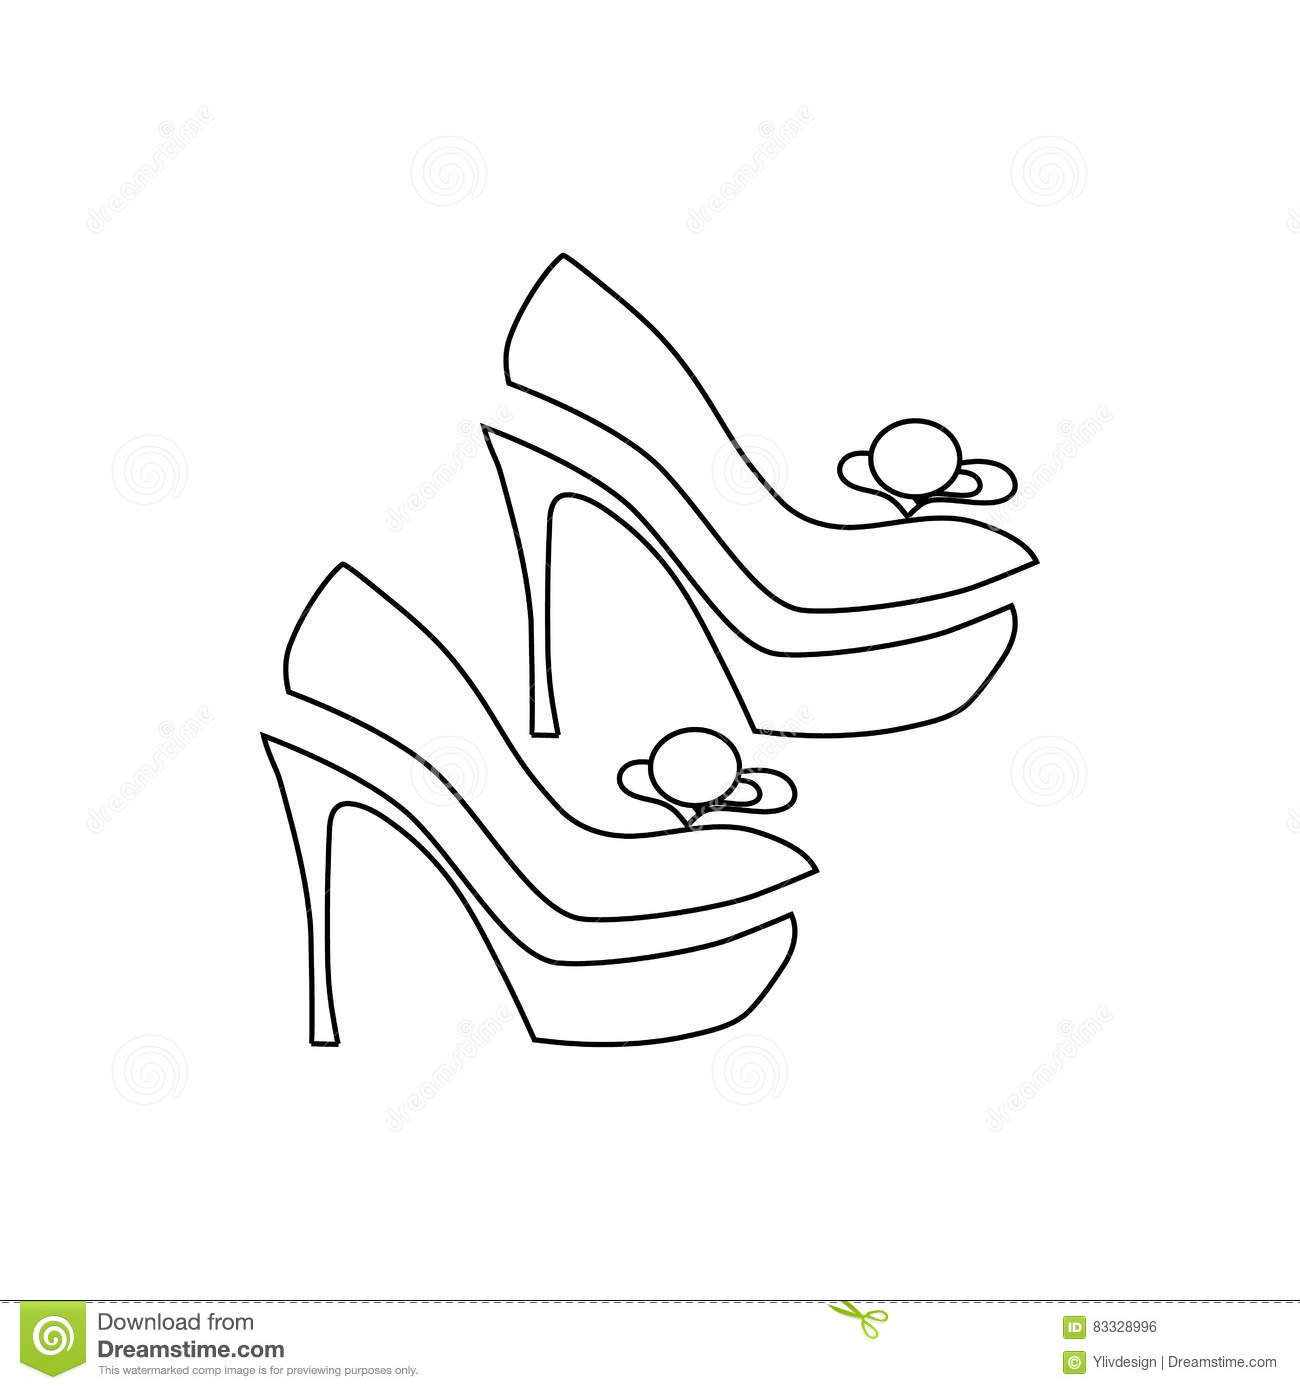 b8a22499d65c Elegant women high heel shoe icon in outline style isolated on white  background vector illustration. More similar stock illustrations